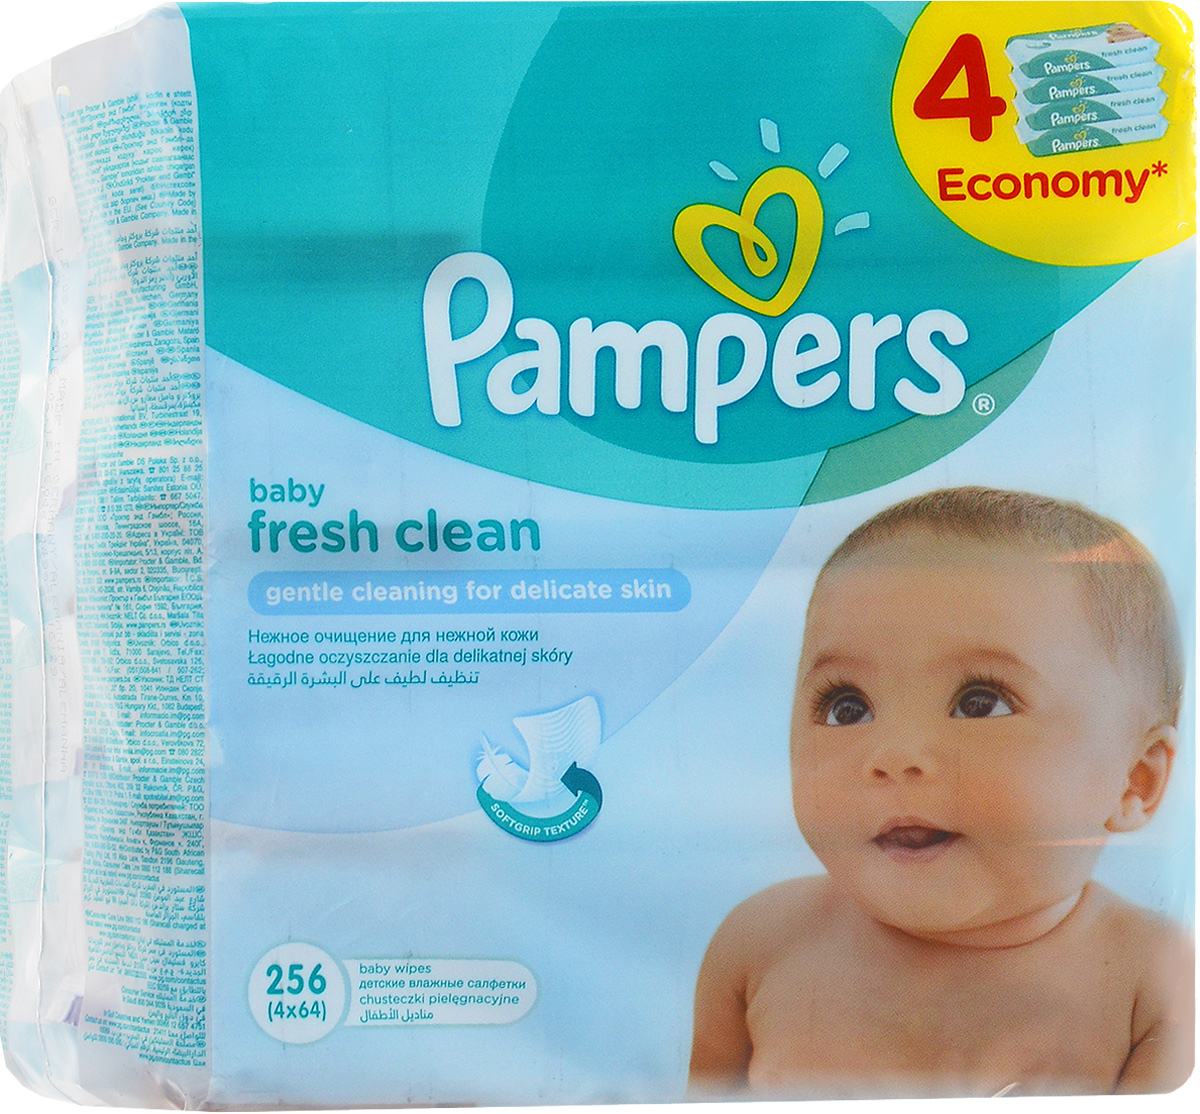 Pampers Детские влажные салфетки Baby Fresh Clean 256 шт lambert kay 013trp 5712 fresh n clean cologne spray fresh floral scent